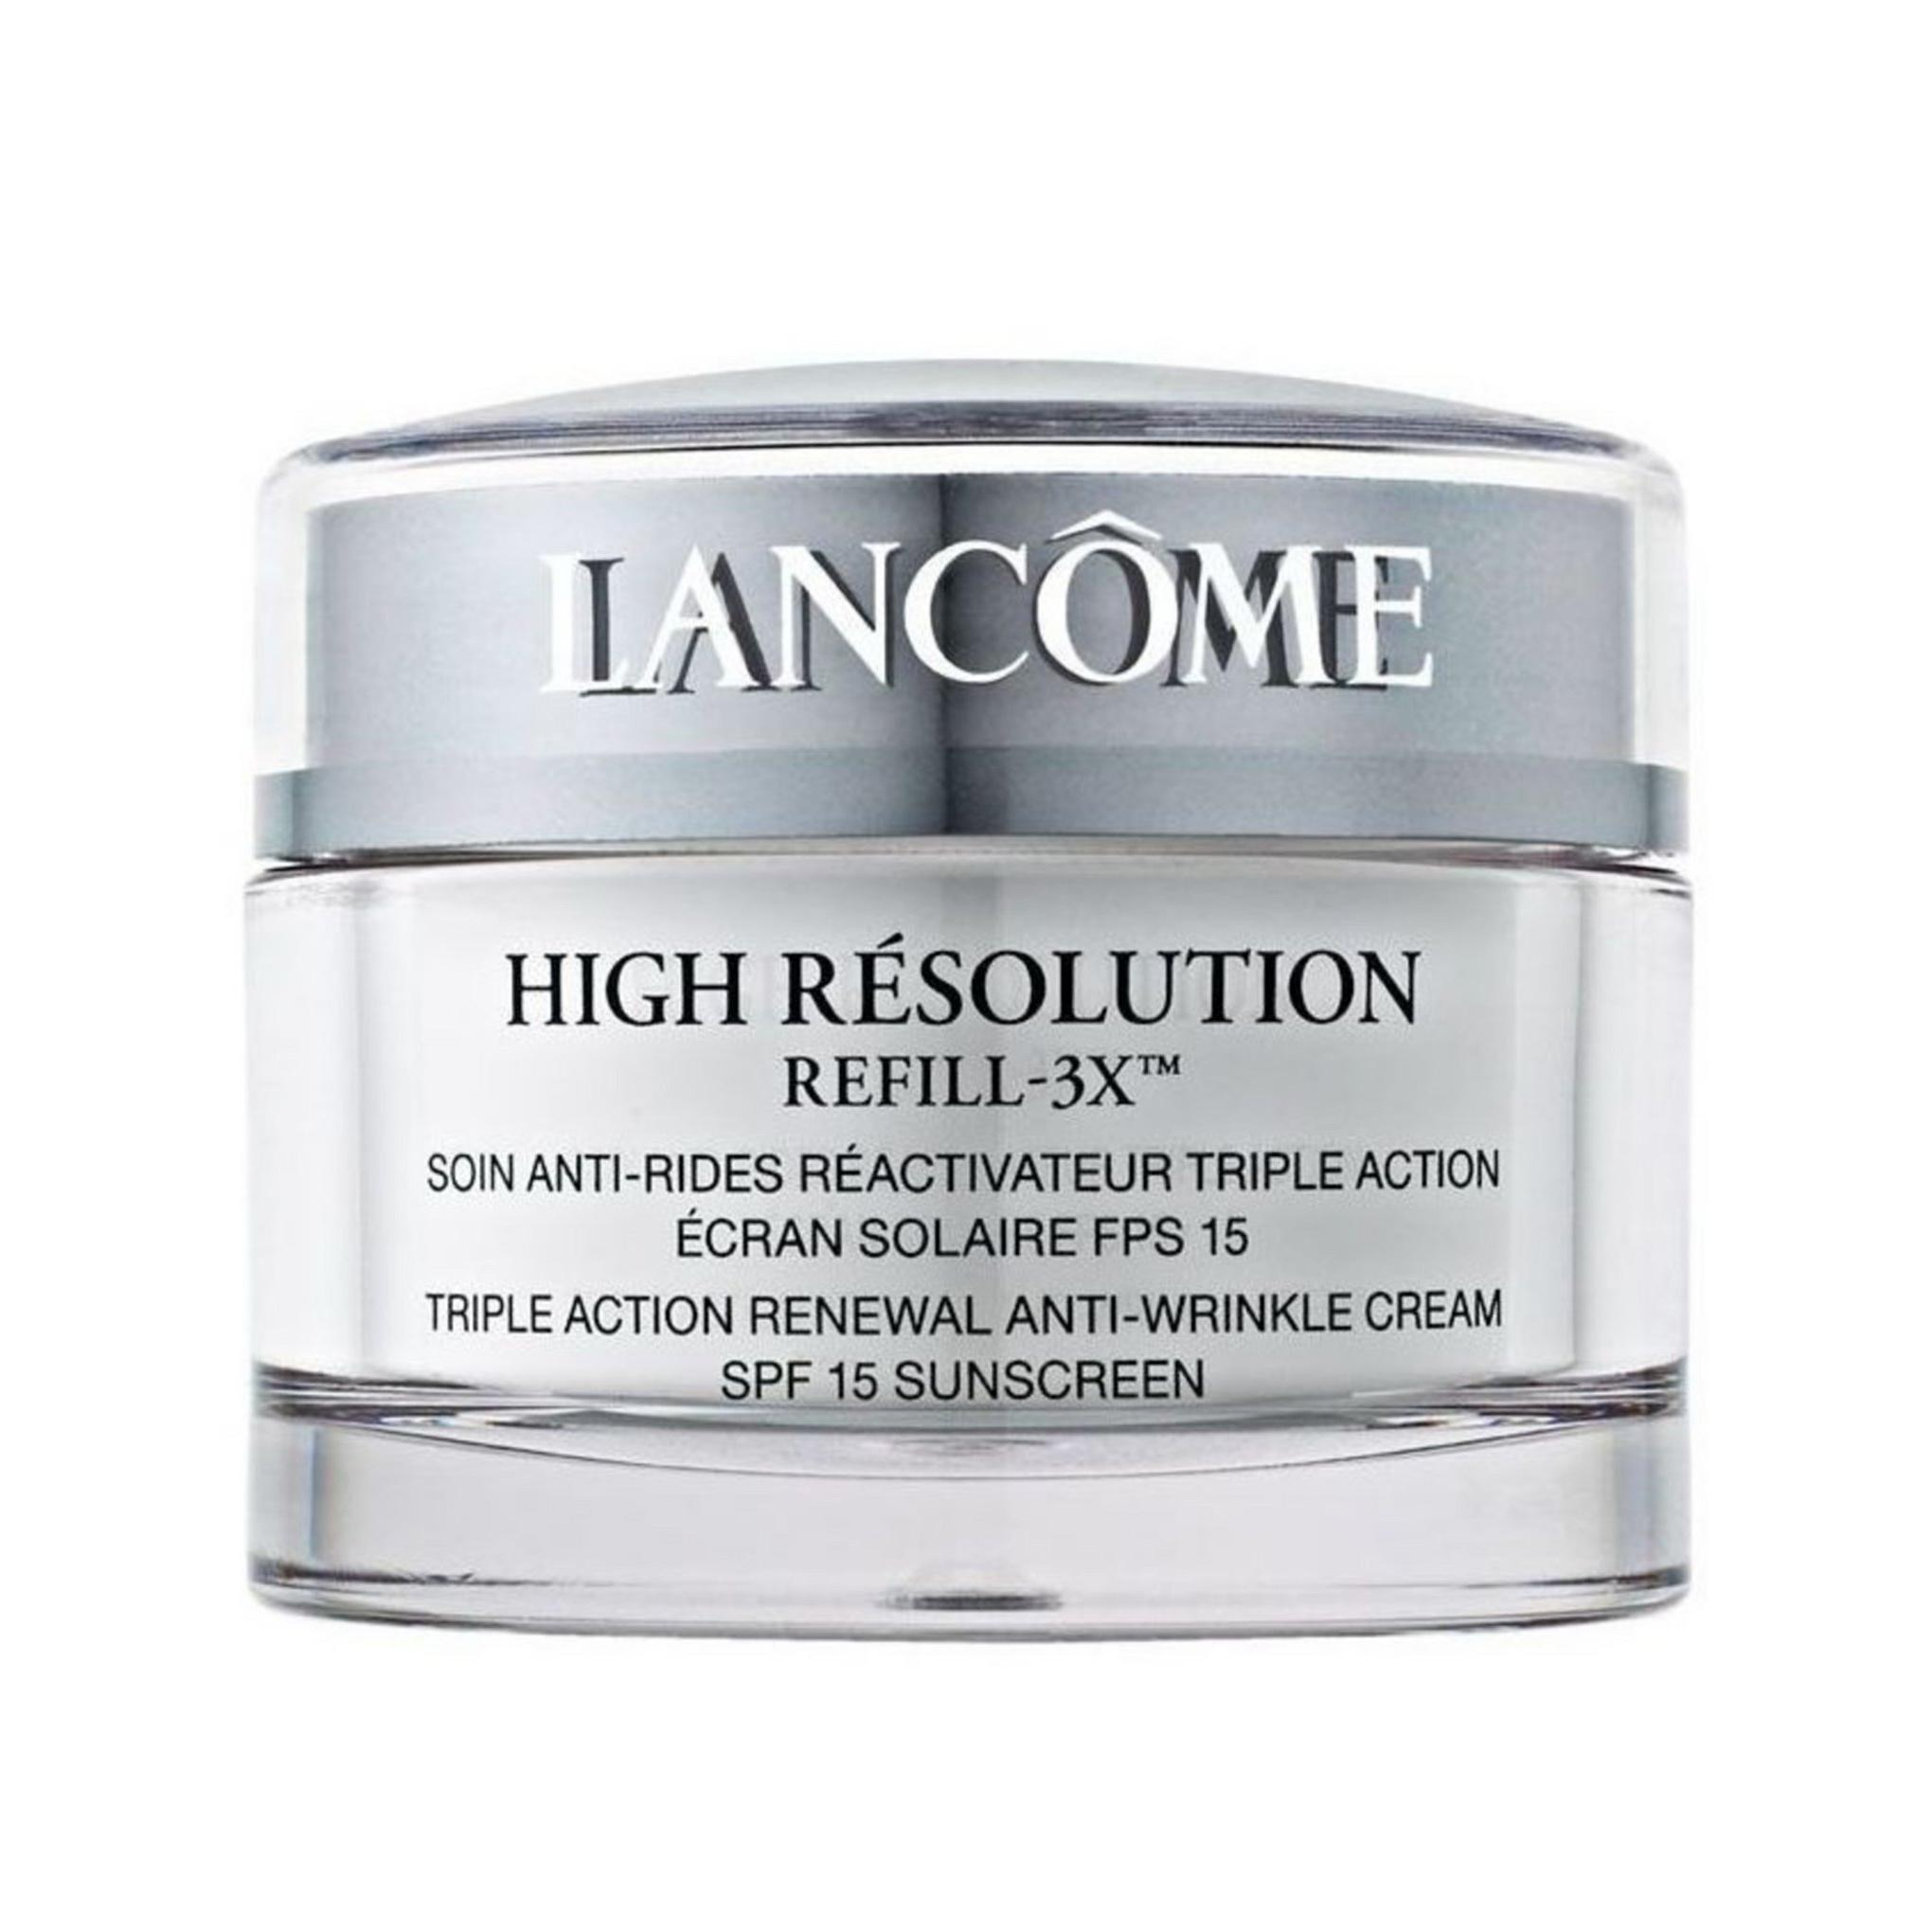 【6折】Lancome 兰蔻 High Résolution Night Refill-3X 晚霜 75ml